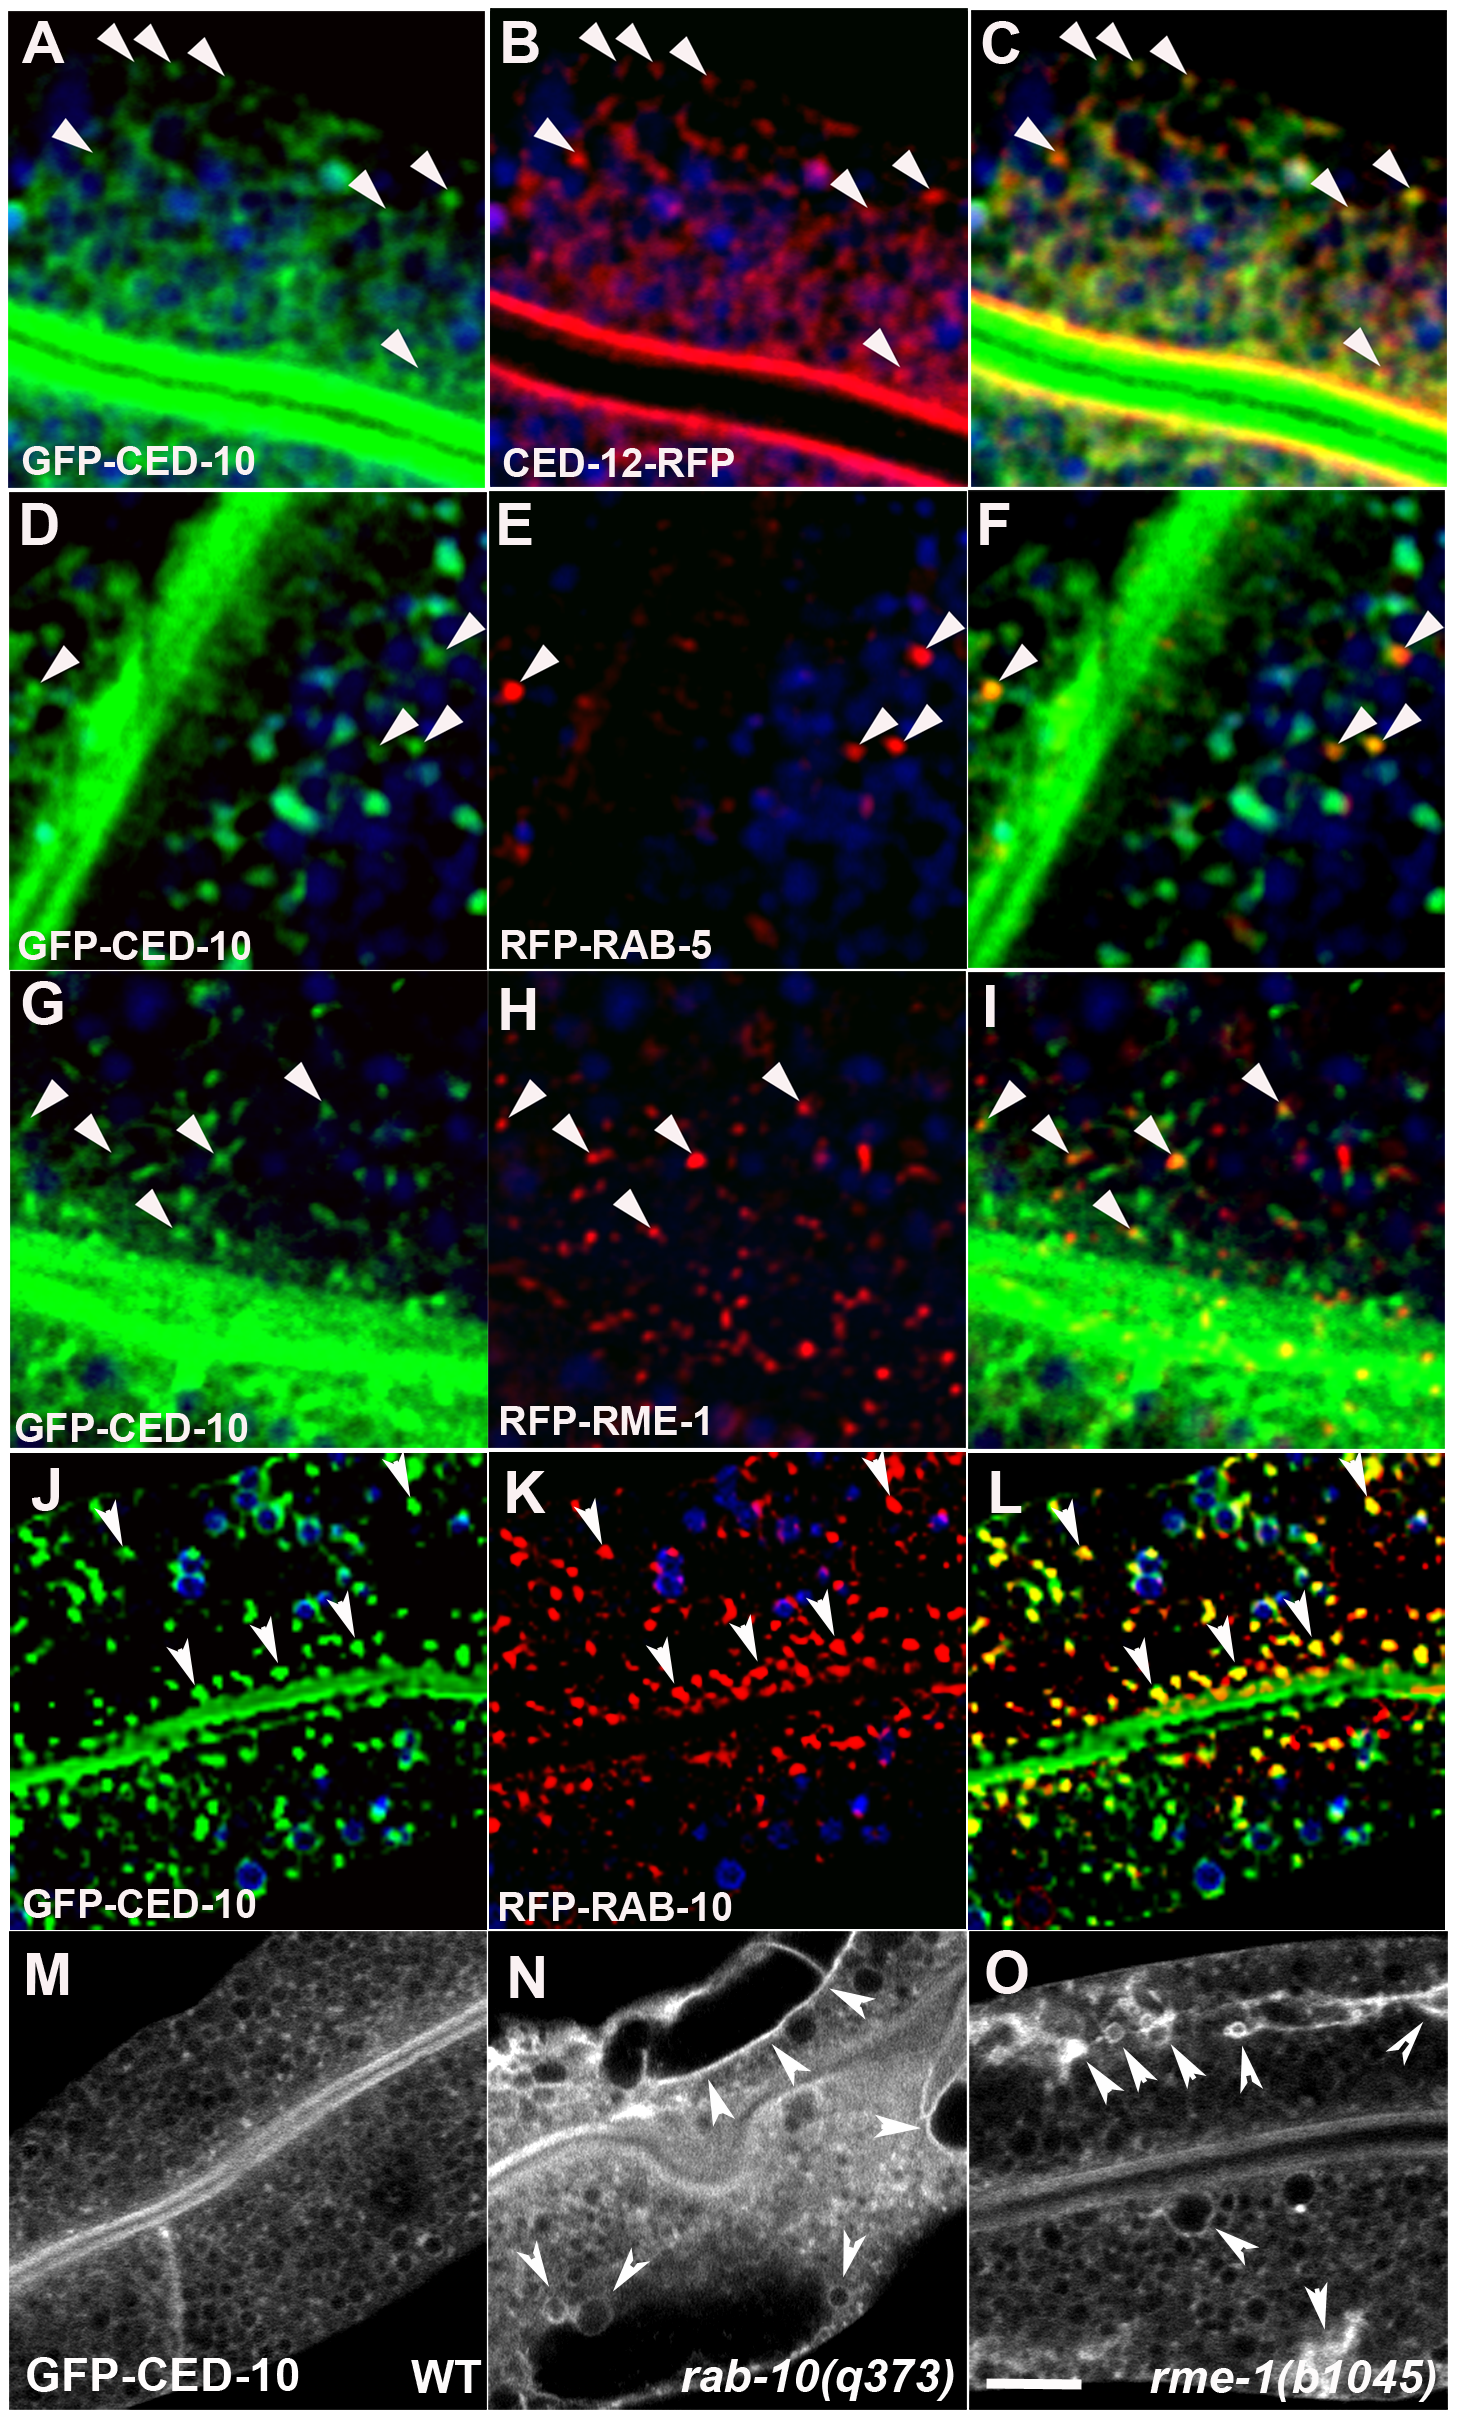 CED-10 localizes to early and recycling endosomes, and colocalizes with CED-12, in the intestine.